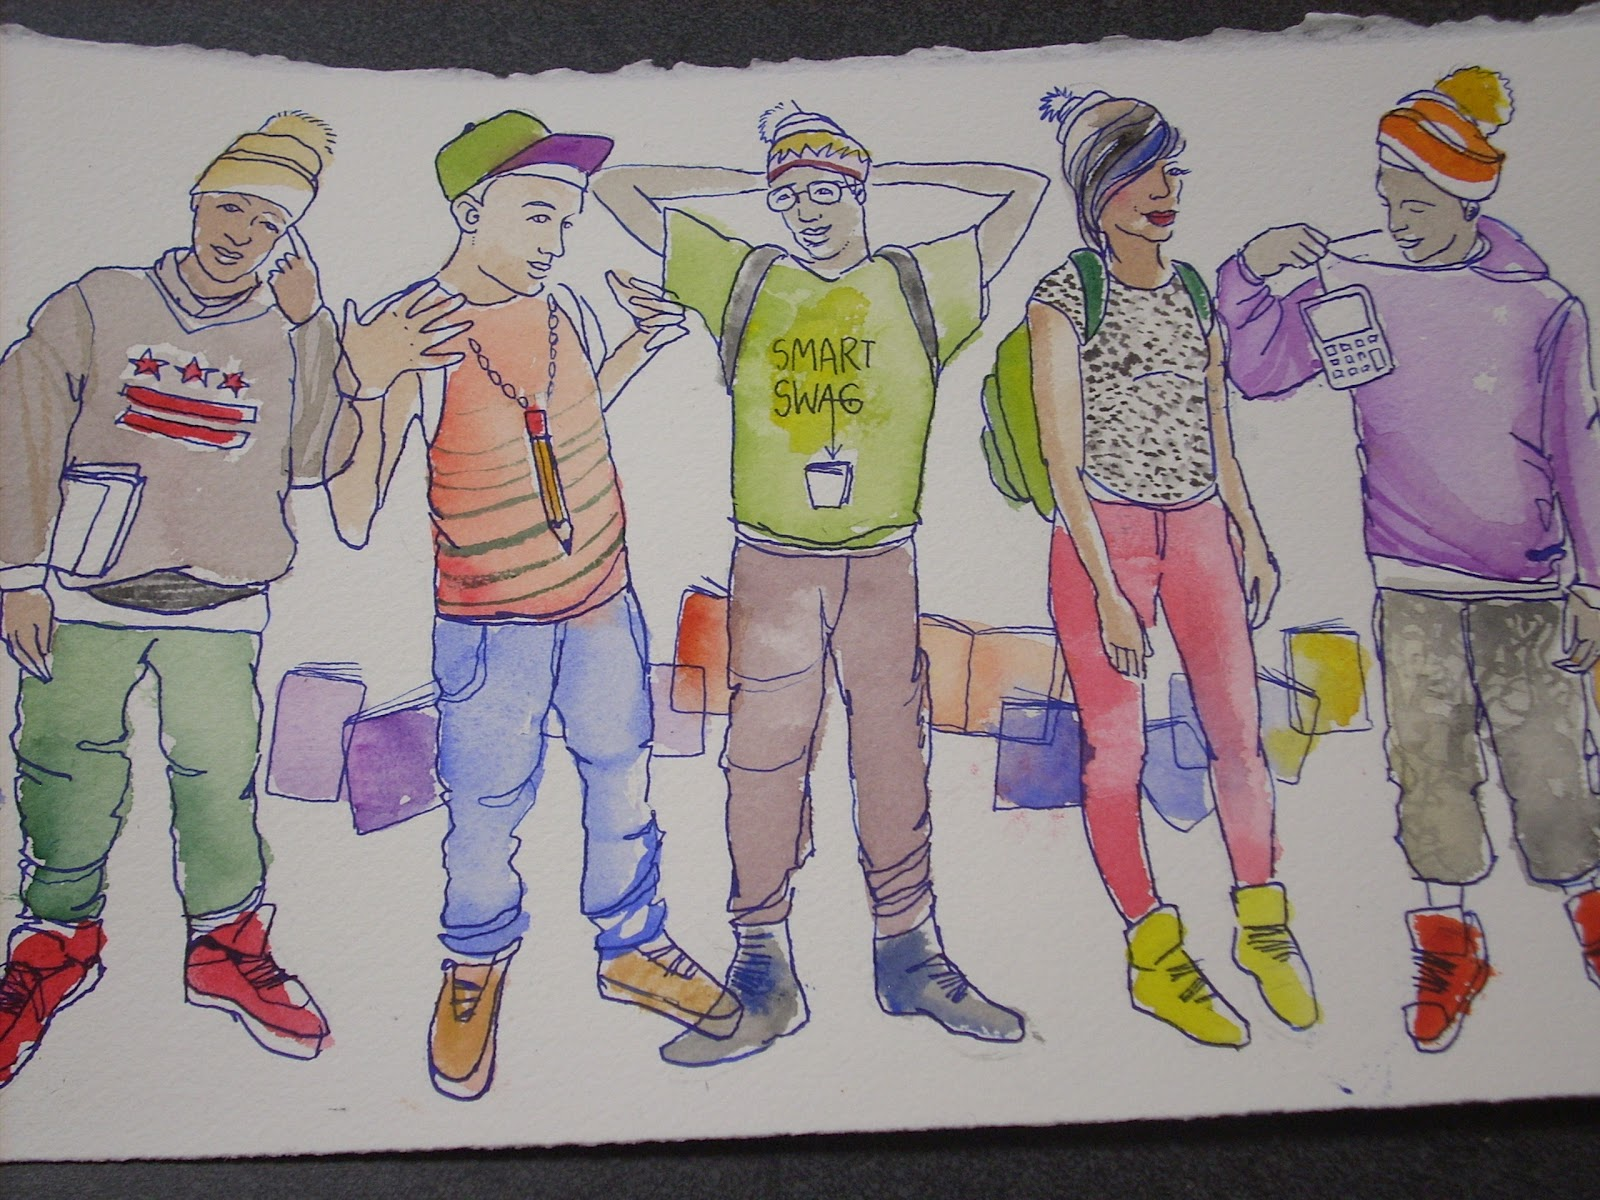 Fun School Drawing And Drawing at The School